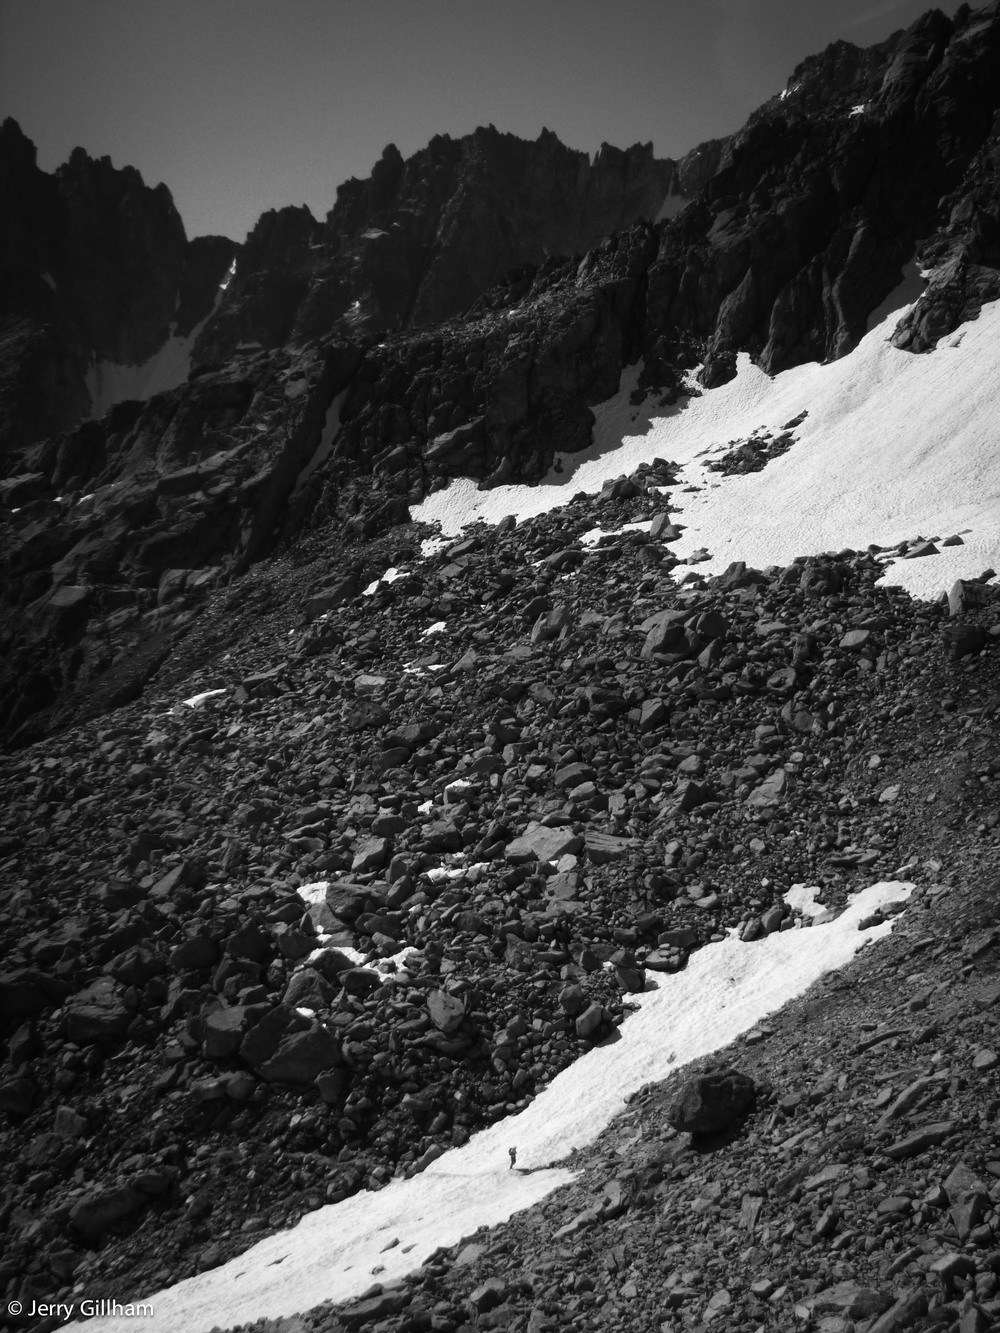 A tiny figure pushing onwards across the snow patch gives the boulders a sense of scale.